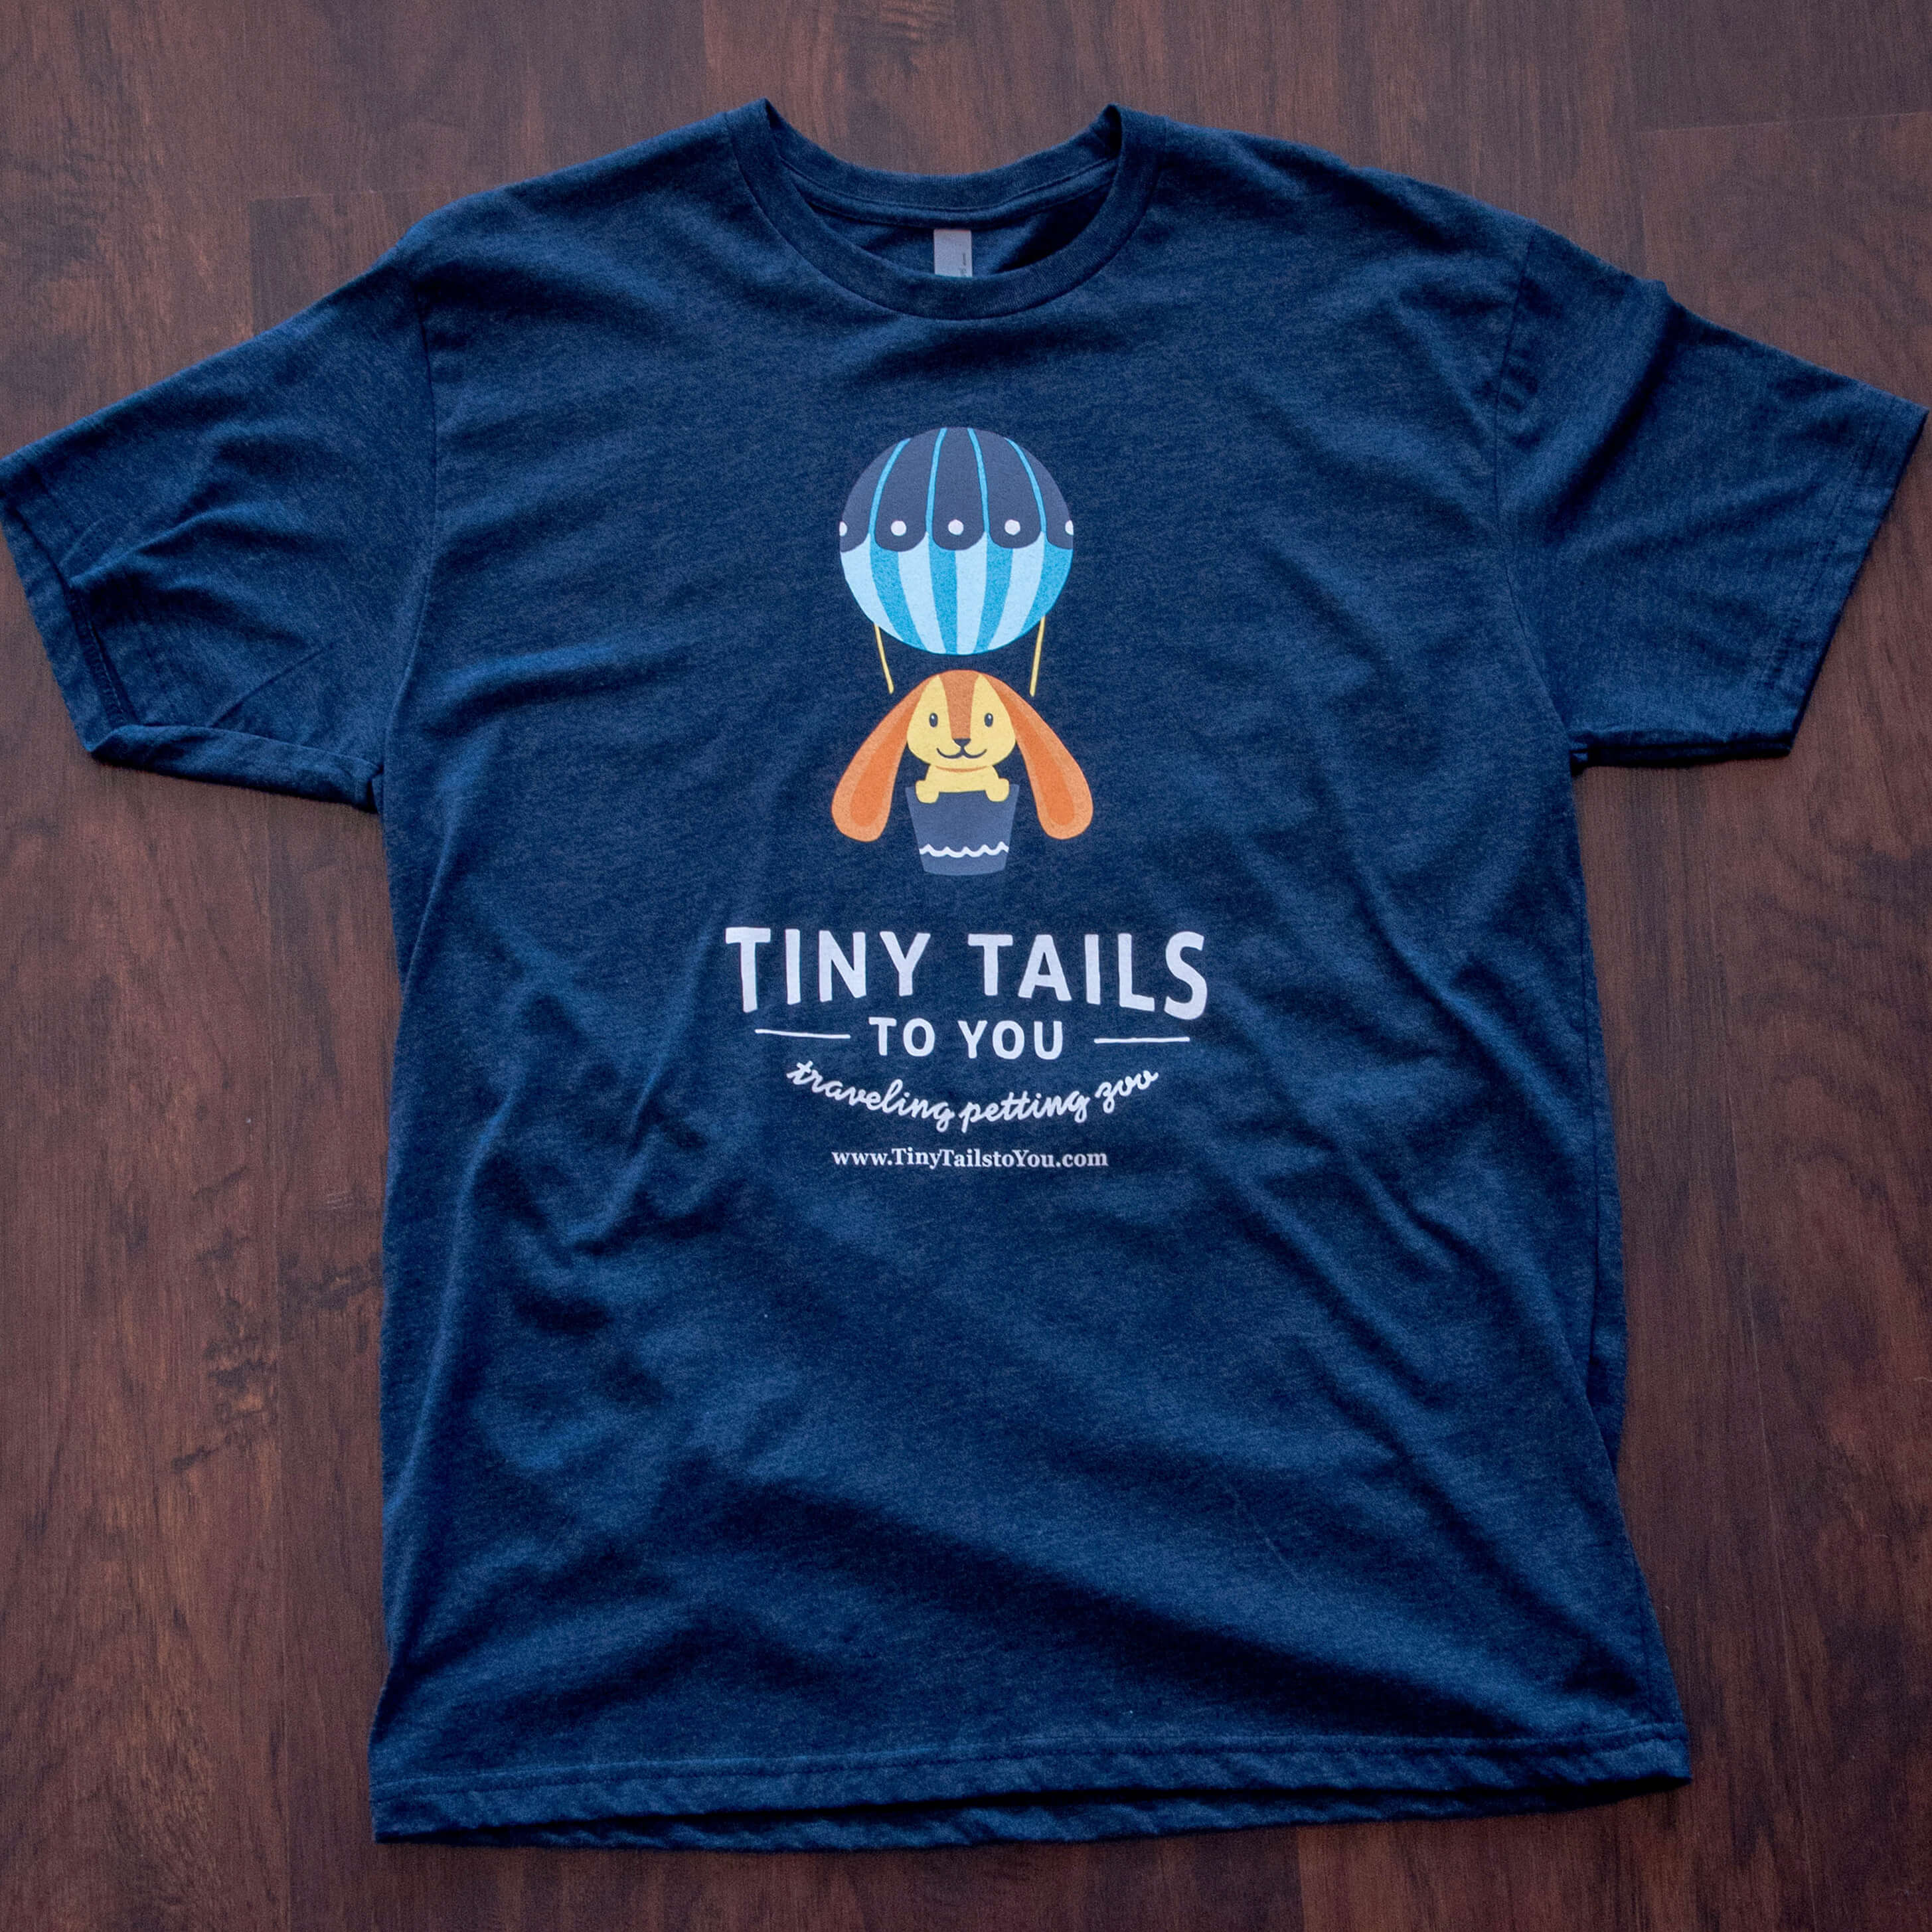 High Quality T Shirts For Screen Printing